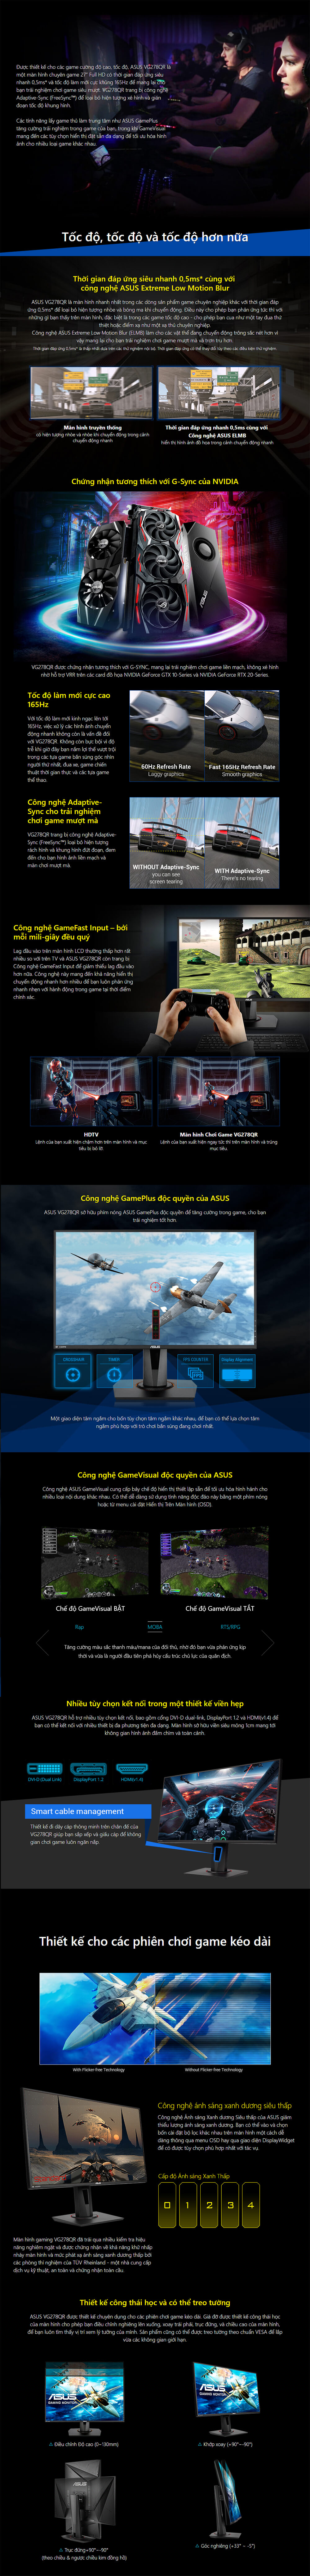 Asus VG278QR Gaming Monitor – 27 inch - FHD - 0.5ms - 165Hz